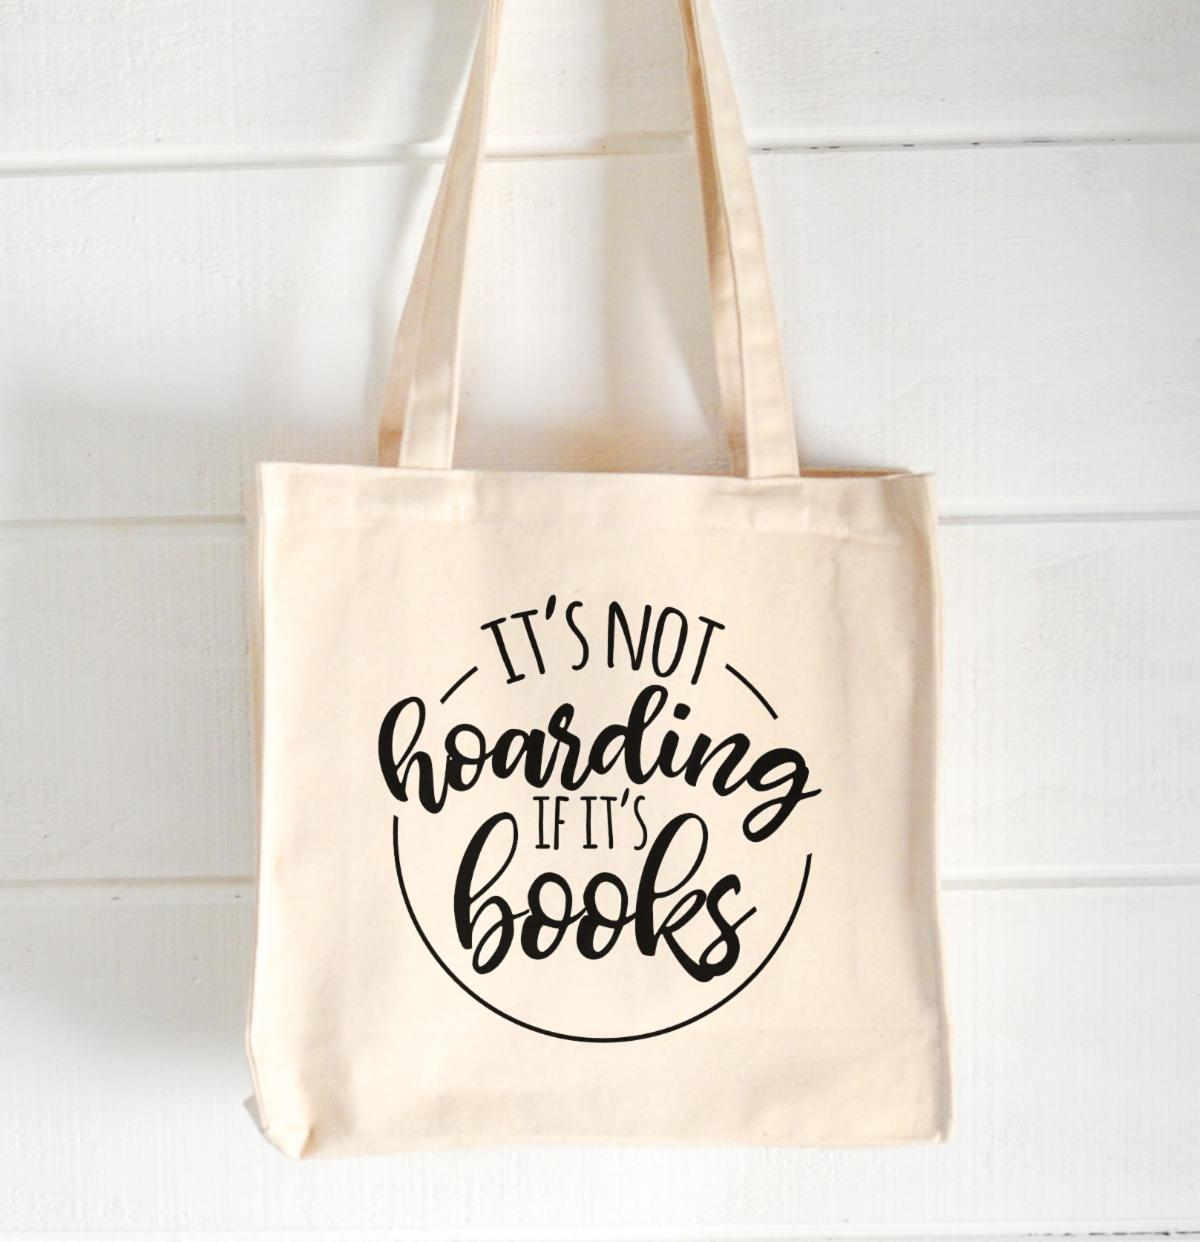 Etsy-tote image